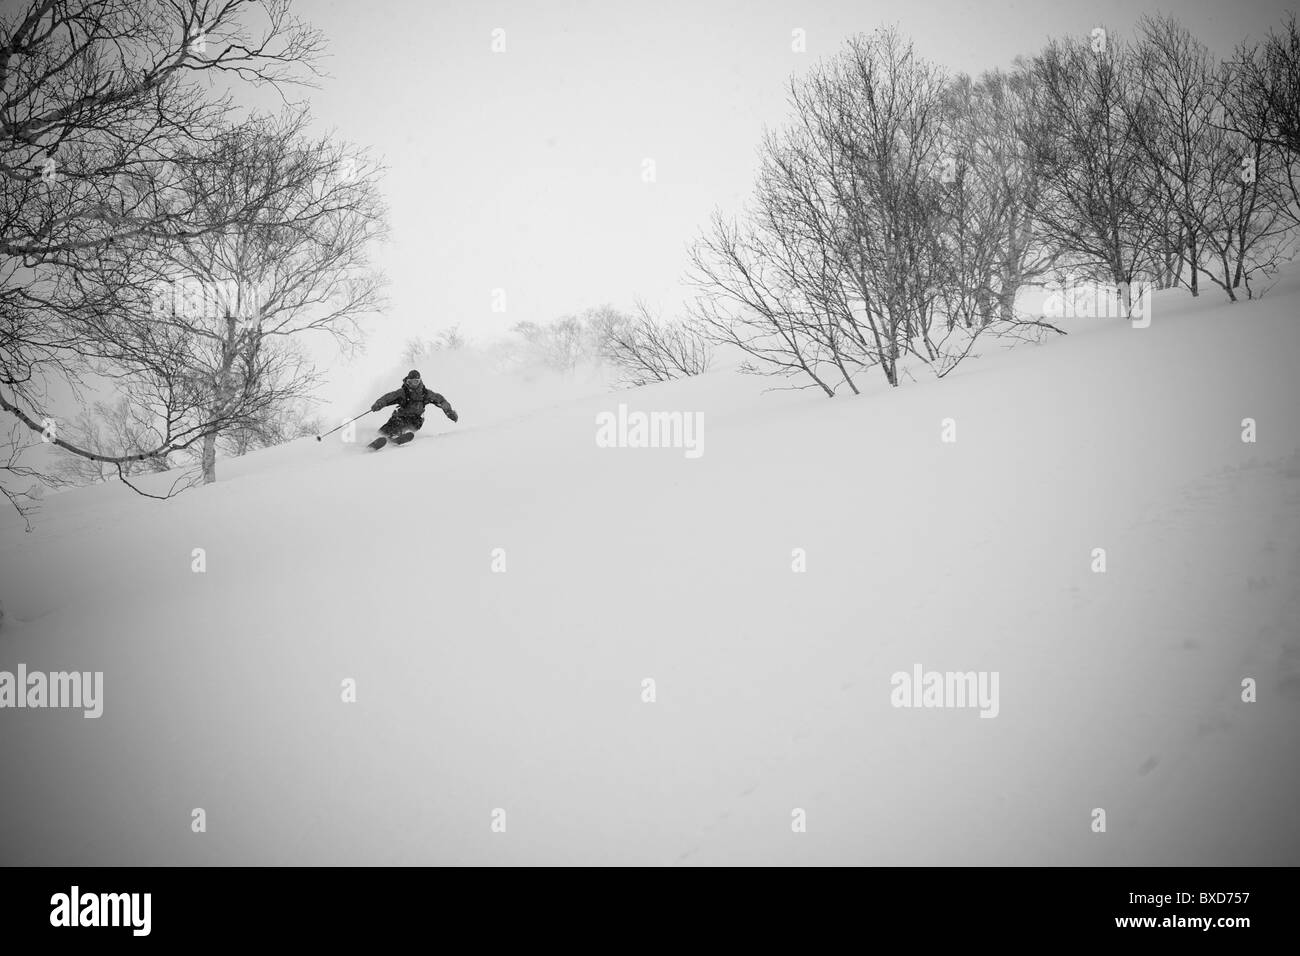 A man weaves his way through some trees in Niseko, Japan - Stock Image